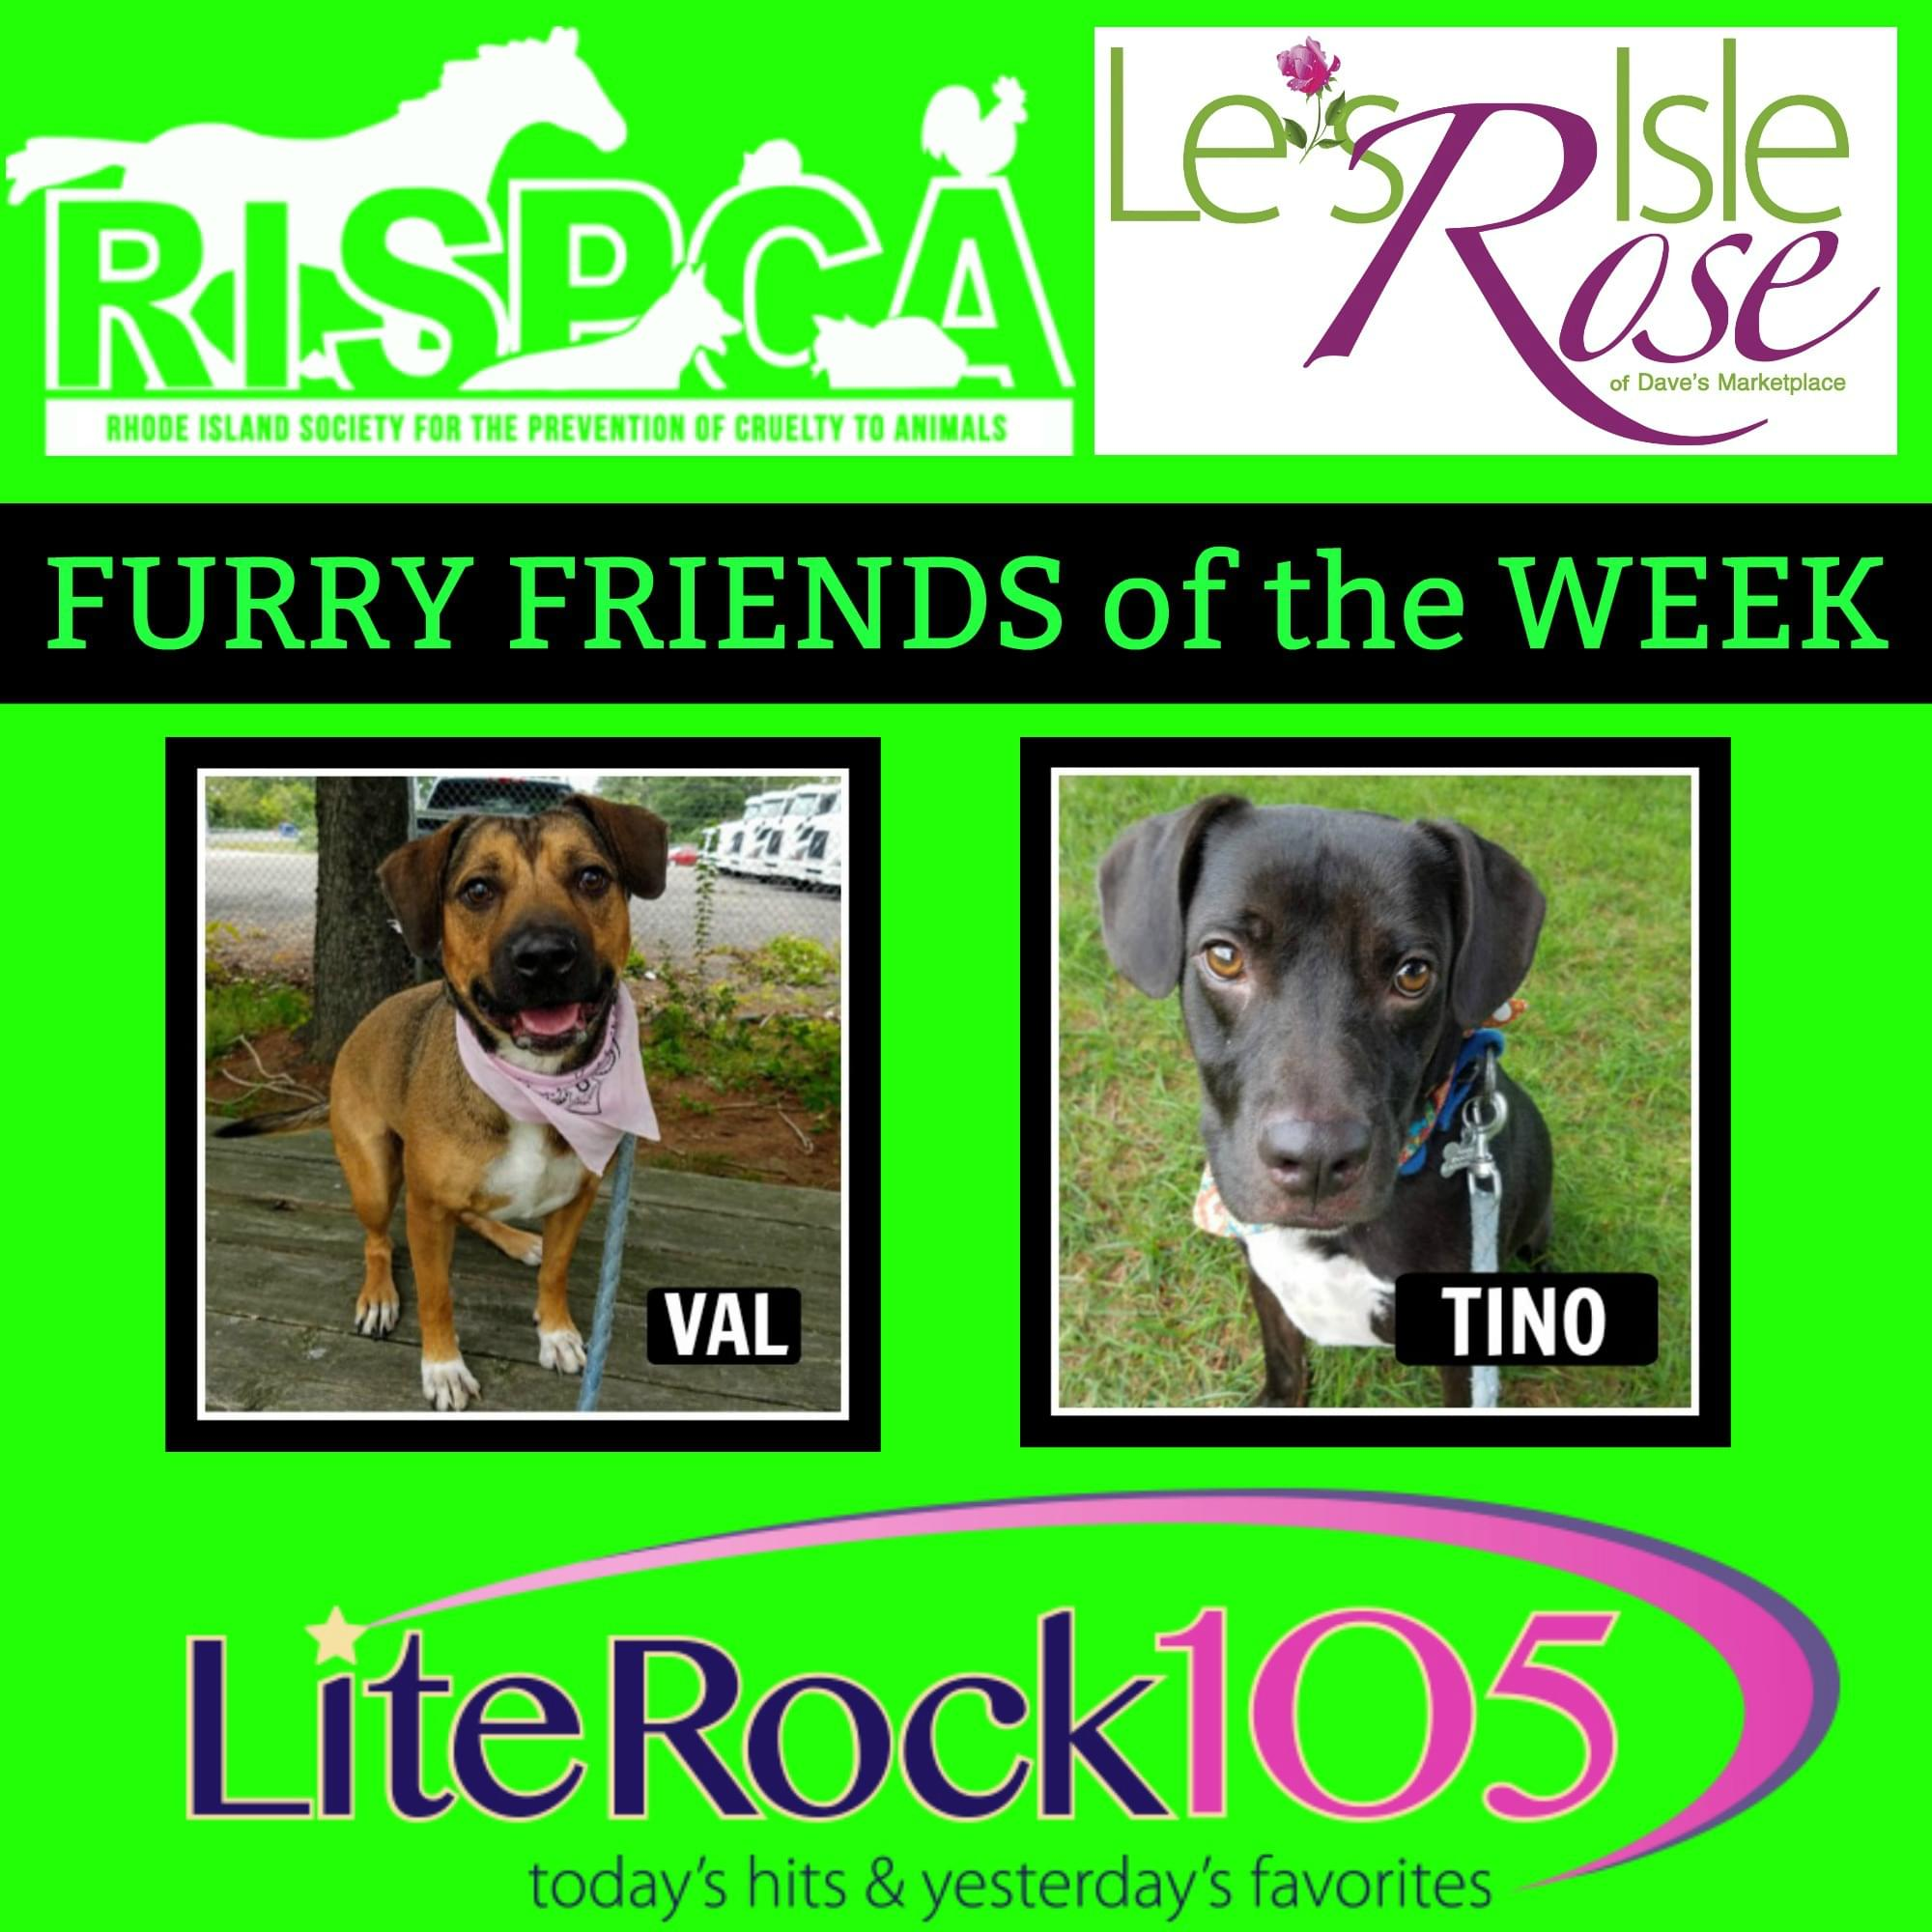 Val and Tino! Our FURRY FRIENDS of WEEK! (10-1-18)